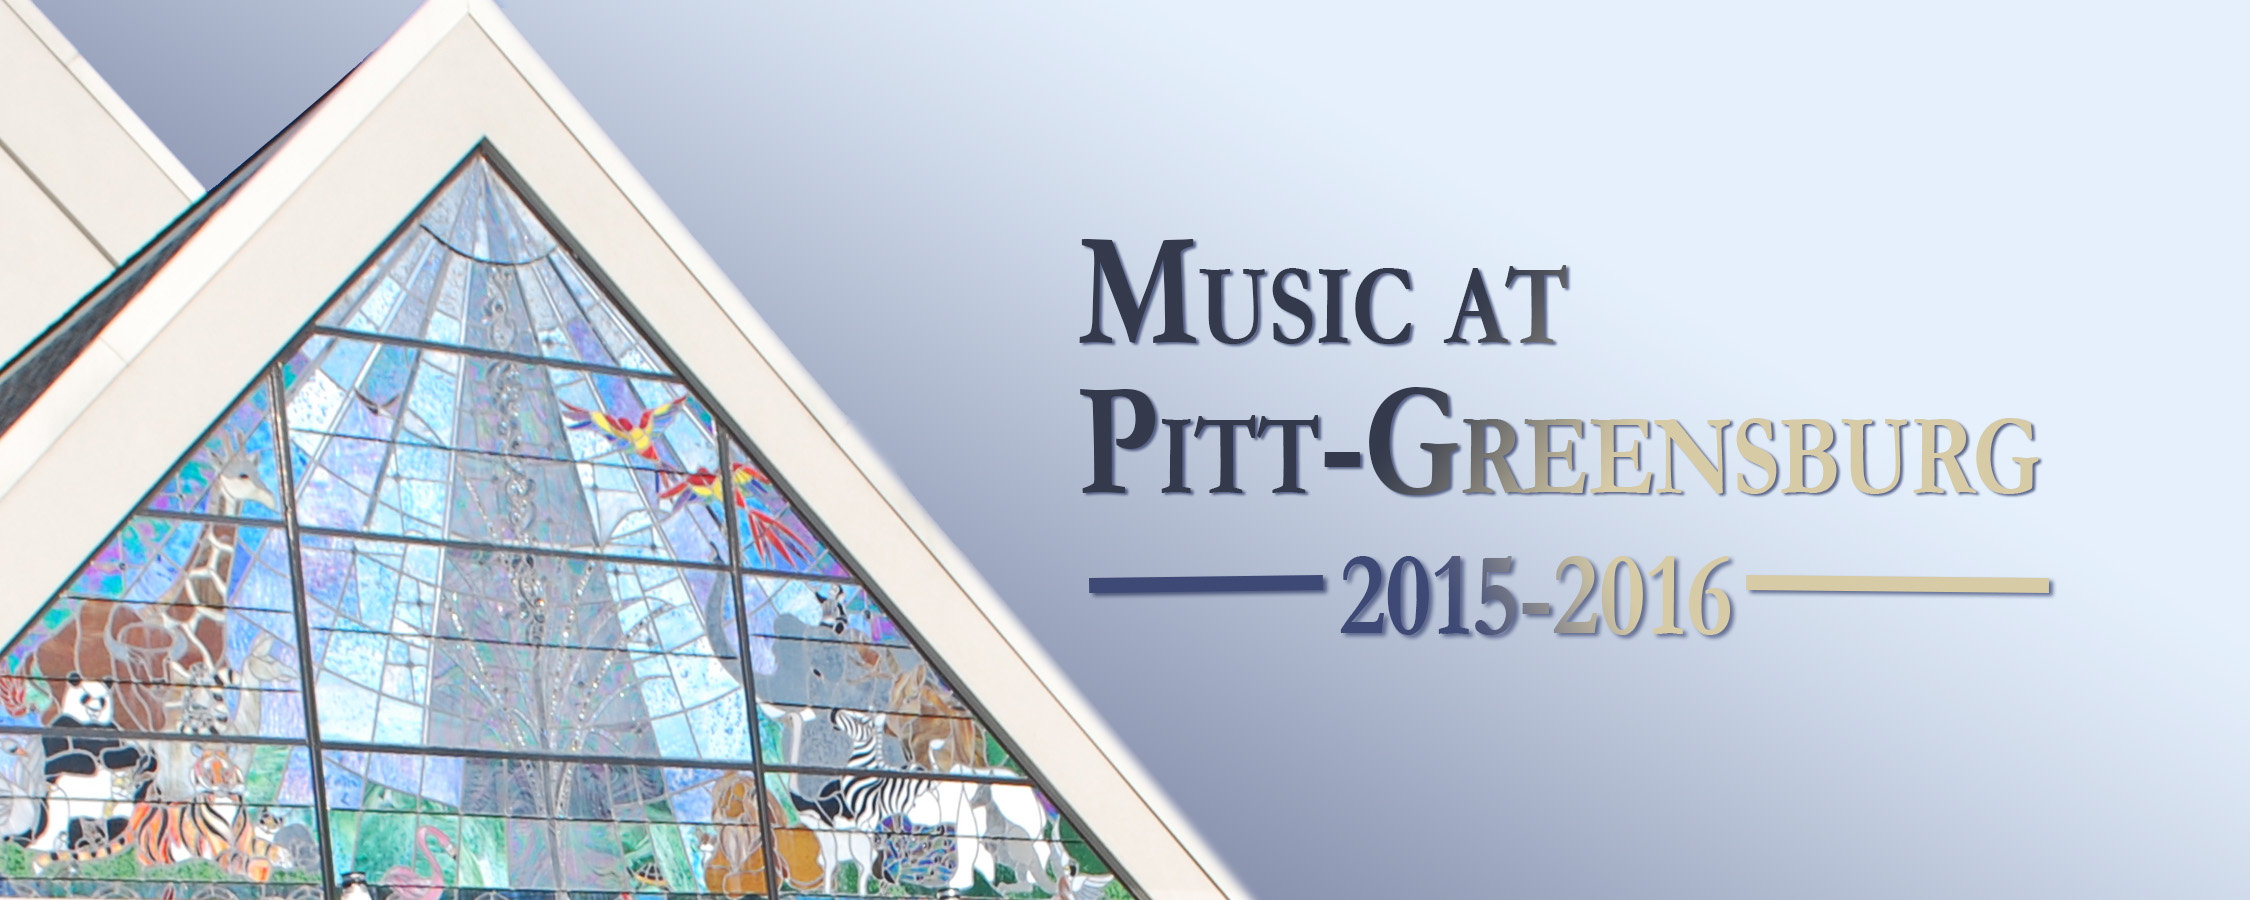 Music at Pitt-Greensburg